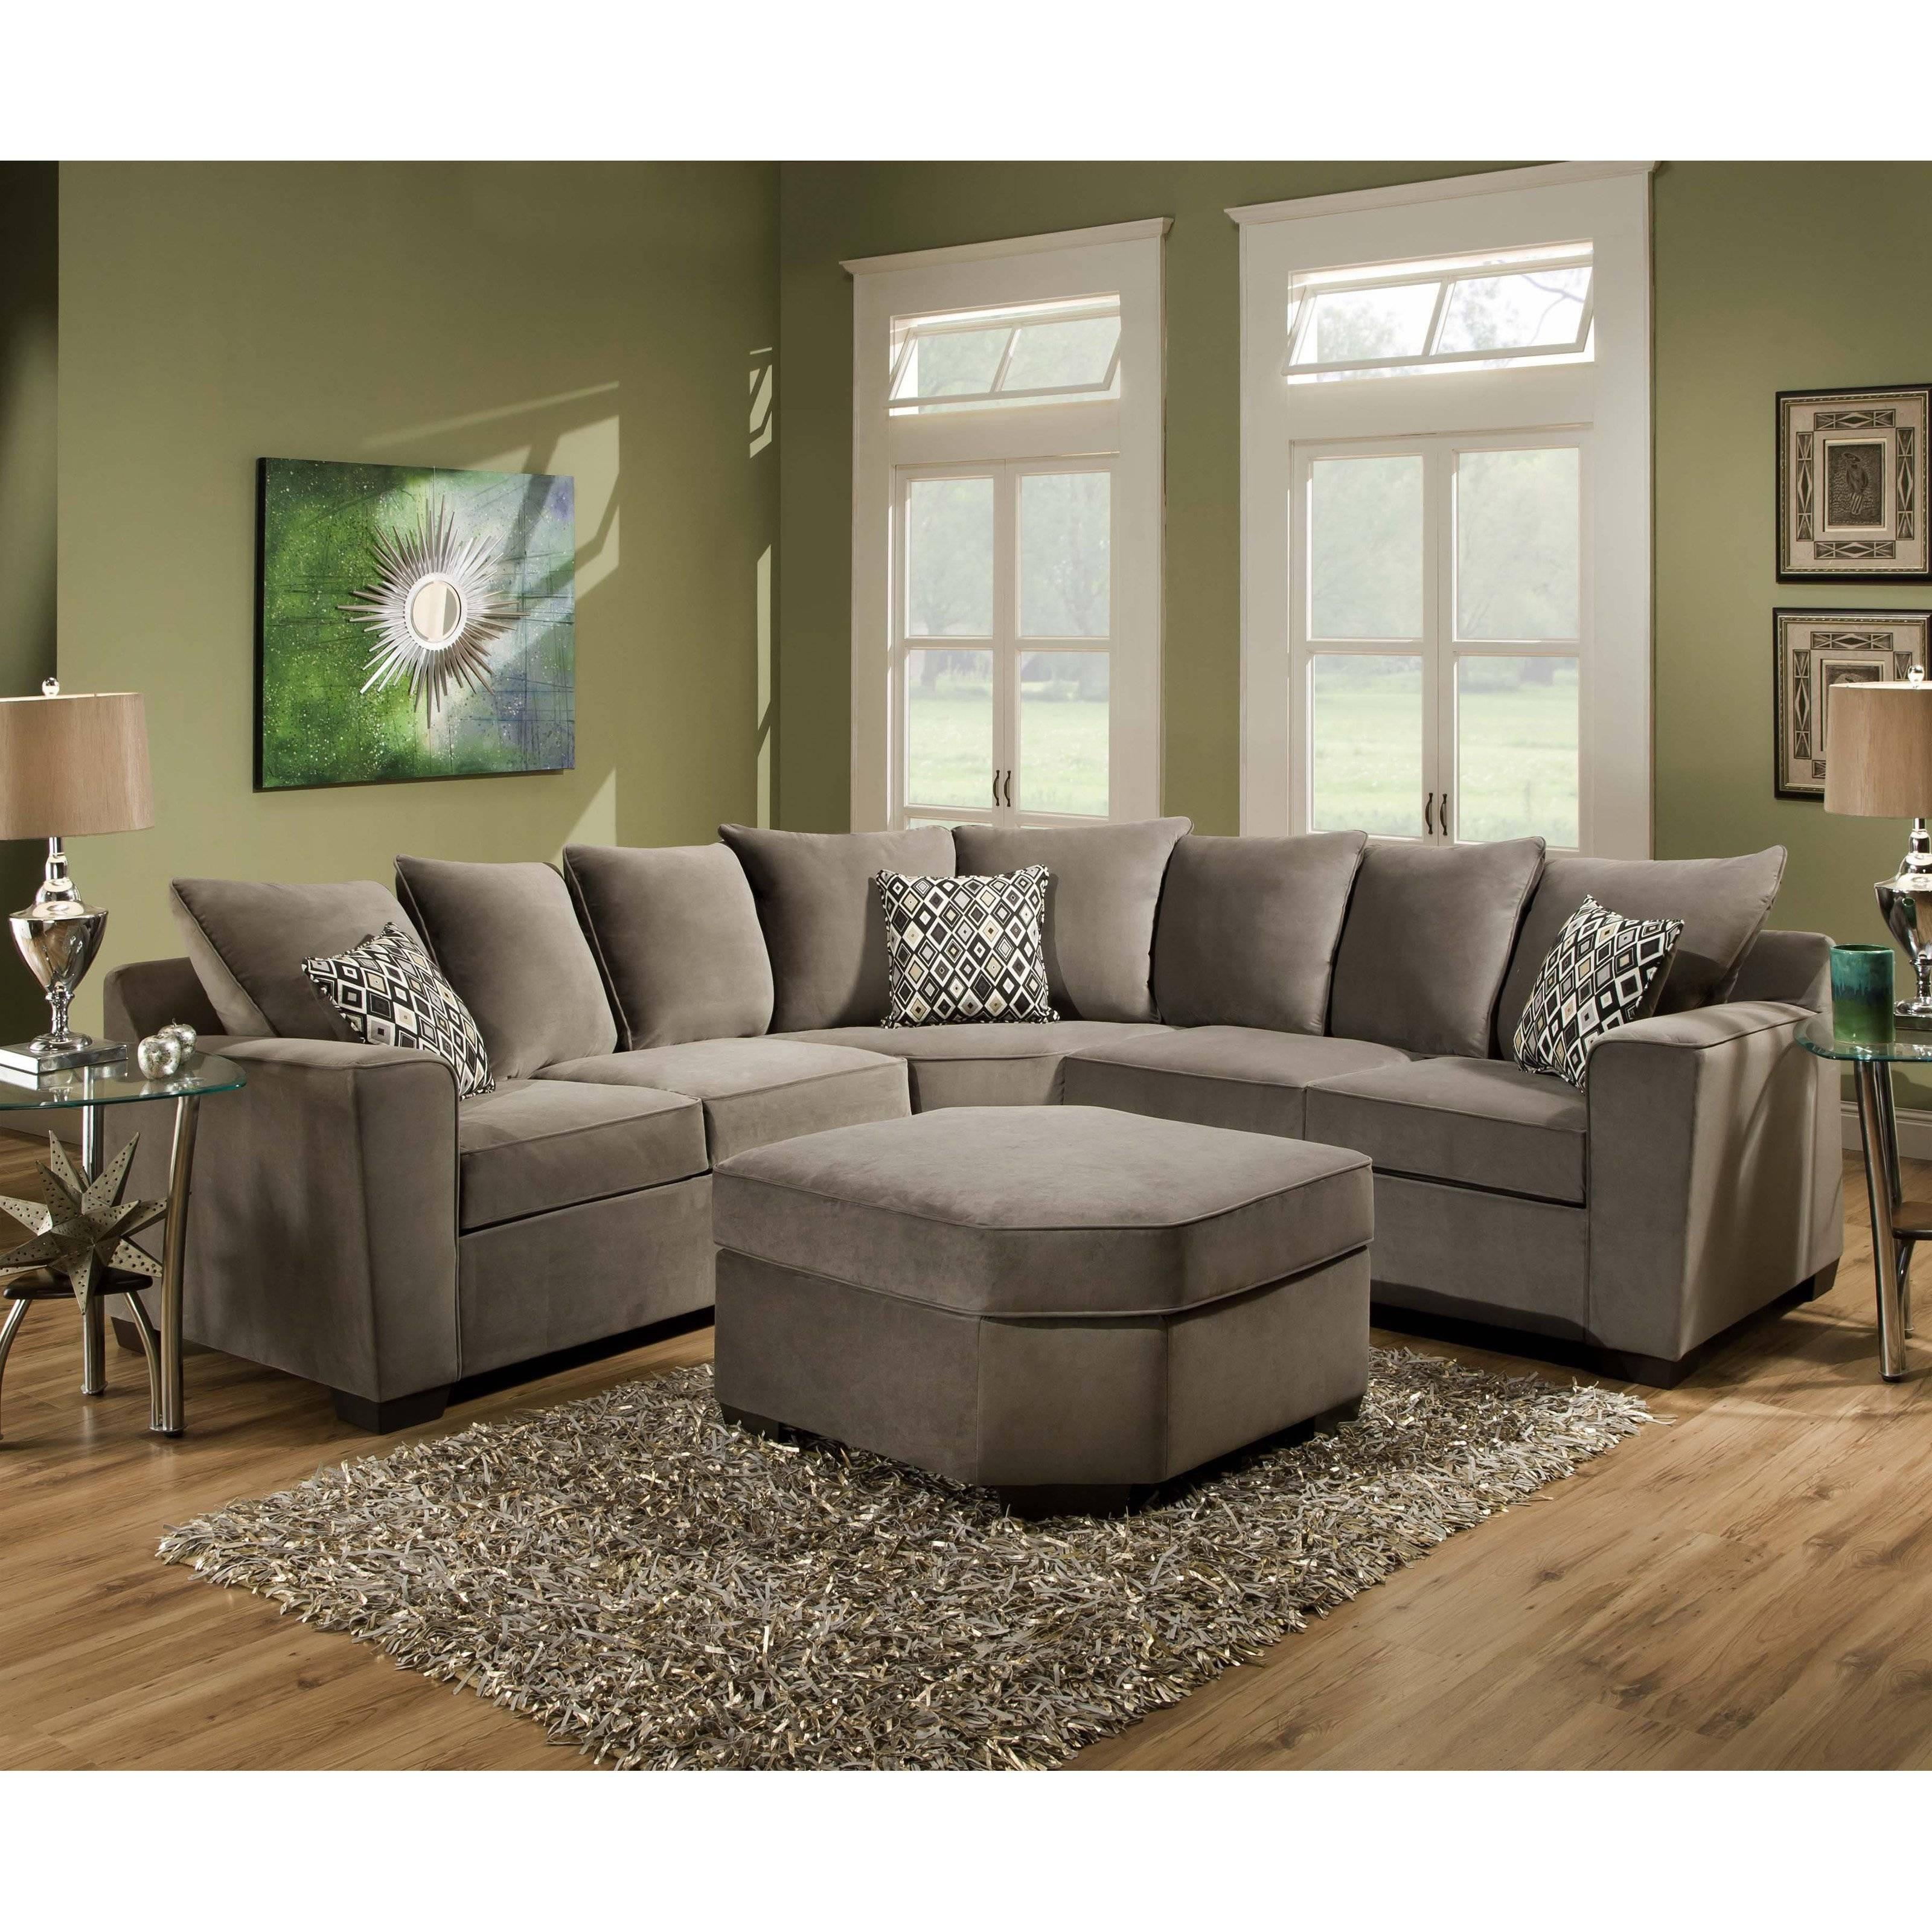 Great Small Scale Sectional Sofa With Chaise 96 On Organic with Craftsman Sectional Sofa (Image 20 of 30)